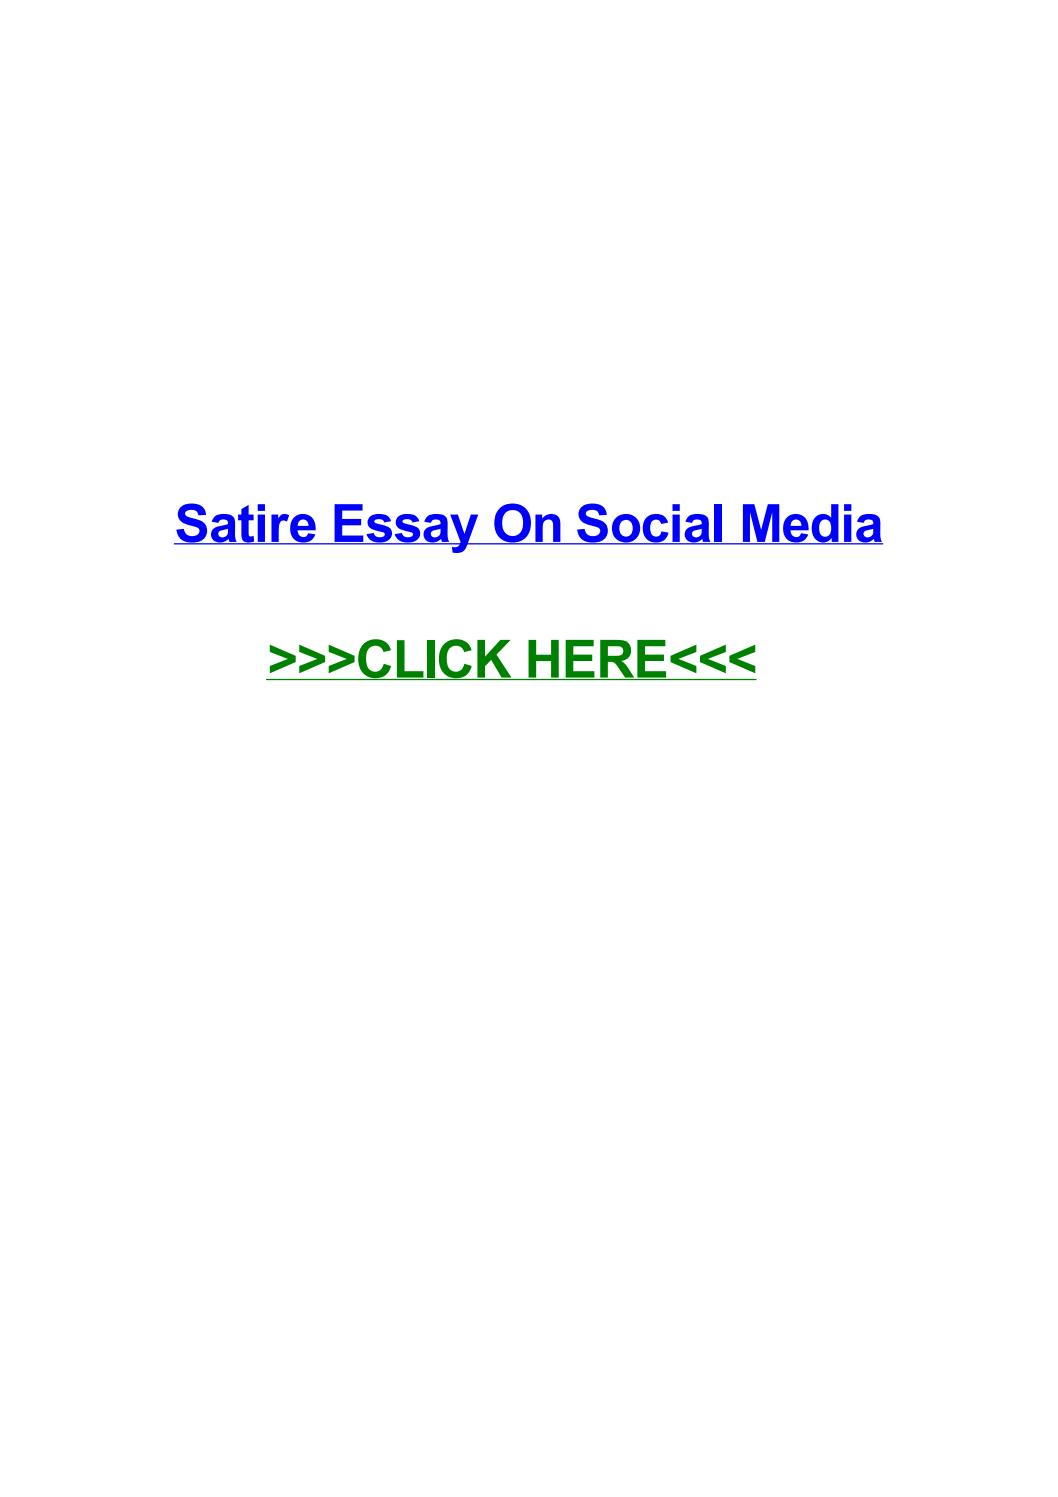 016 Satire Essay On Social Media Example Page 1 Unbelievable Full